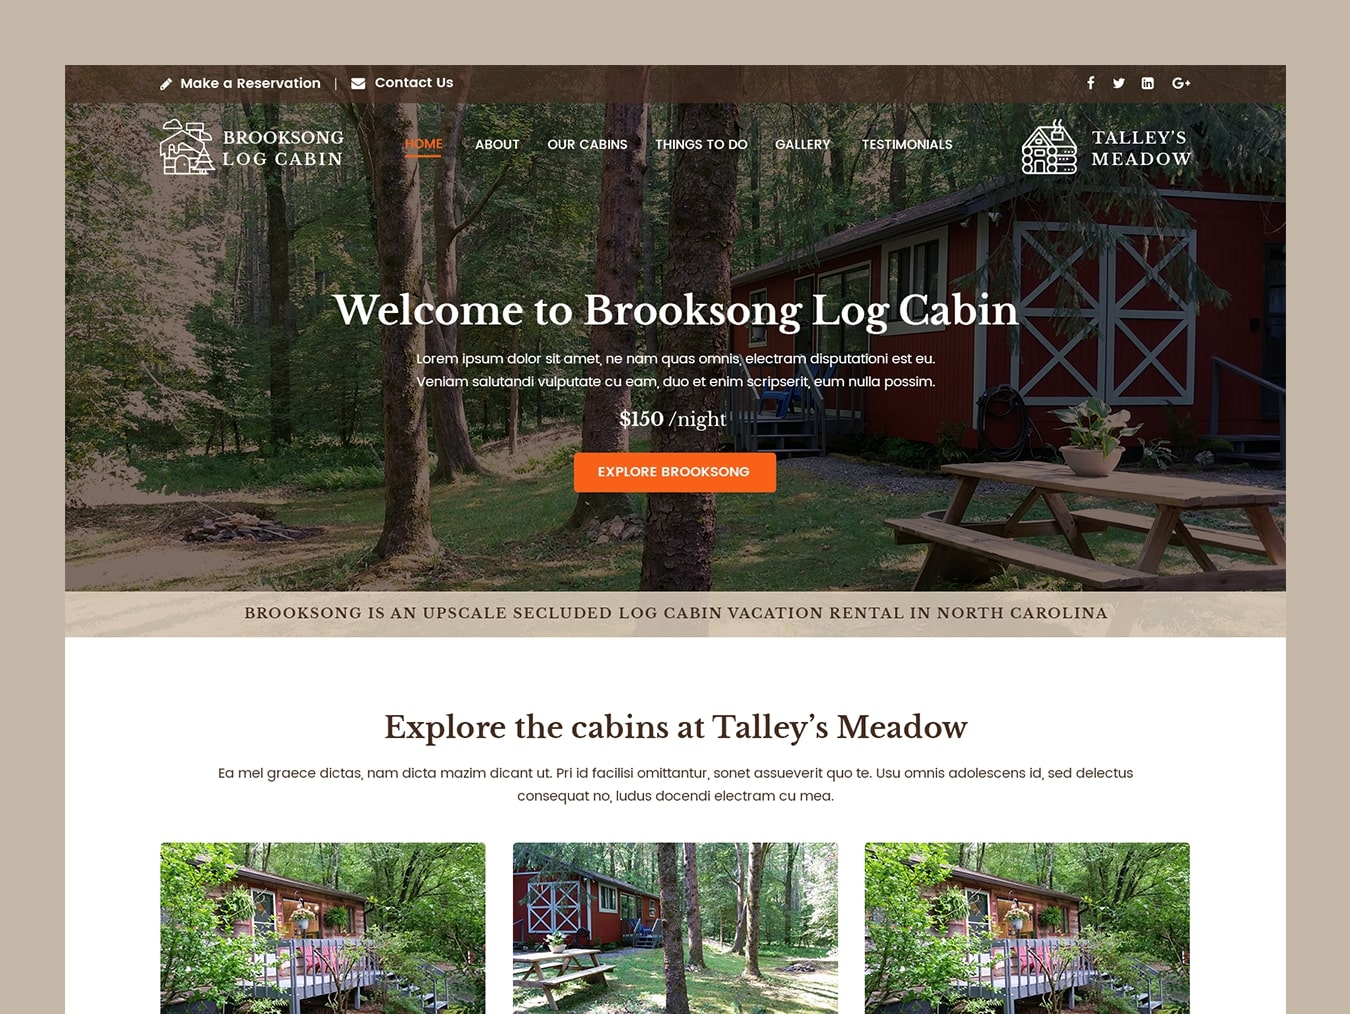 brooksong-log-cabin-web-design-featured